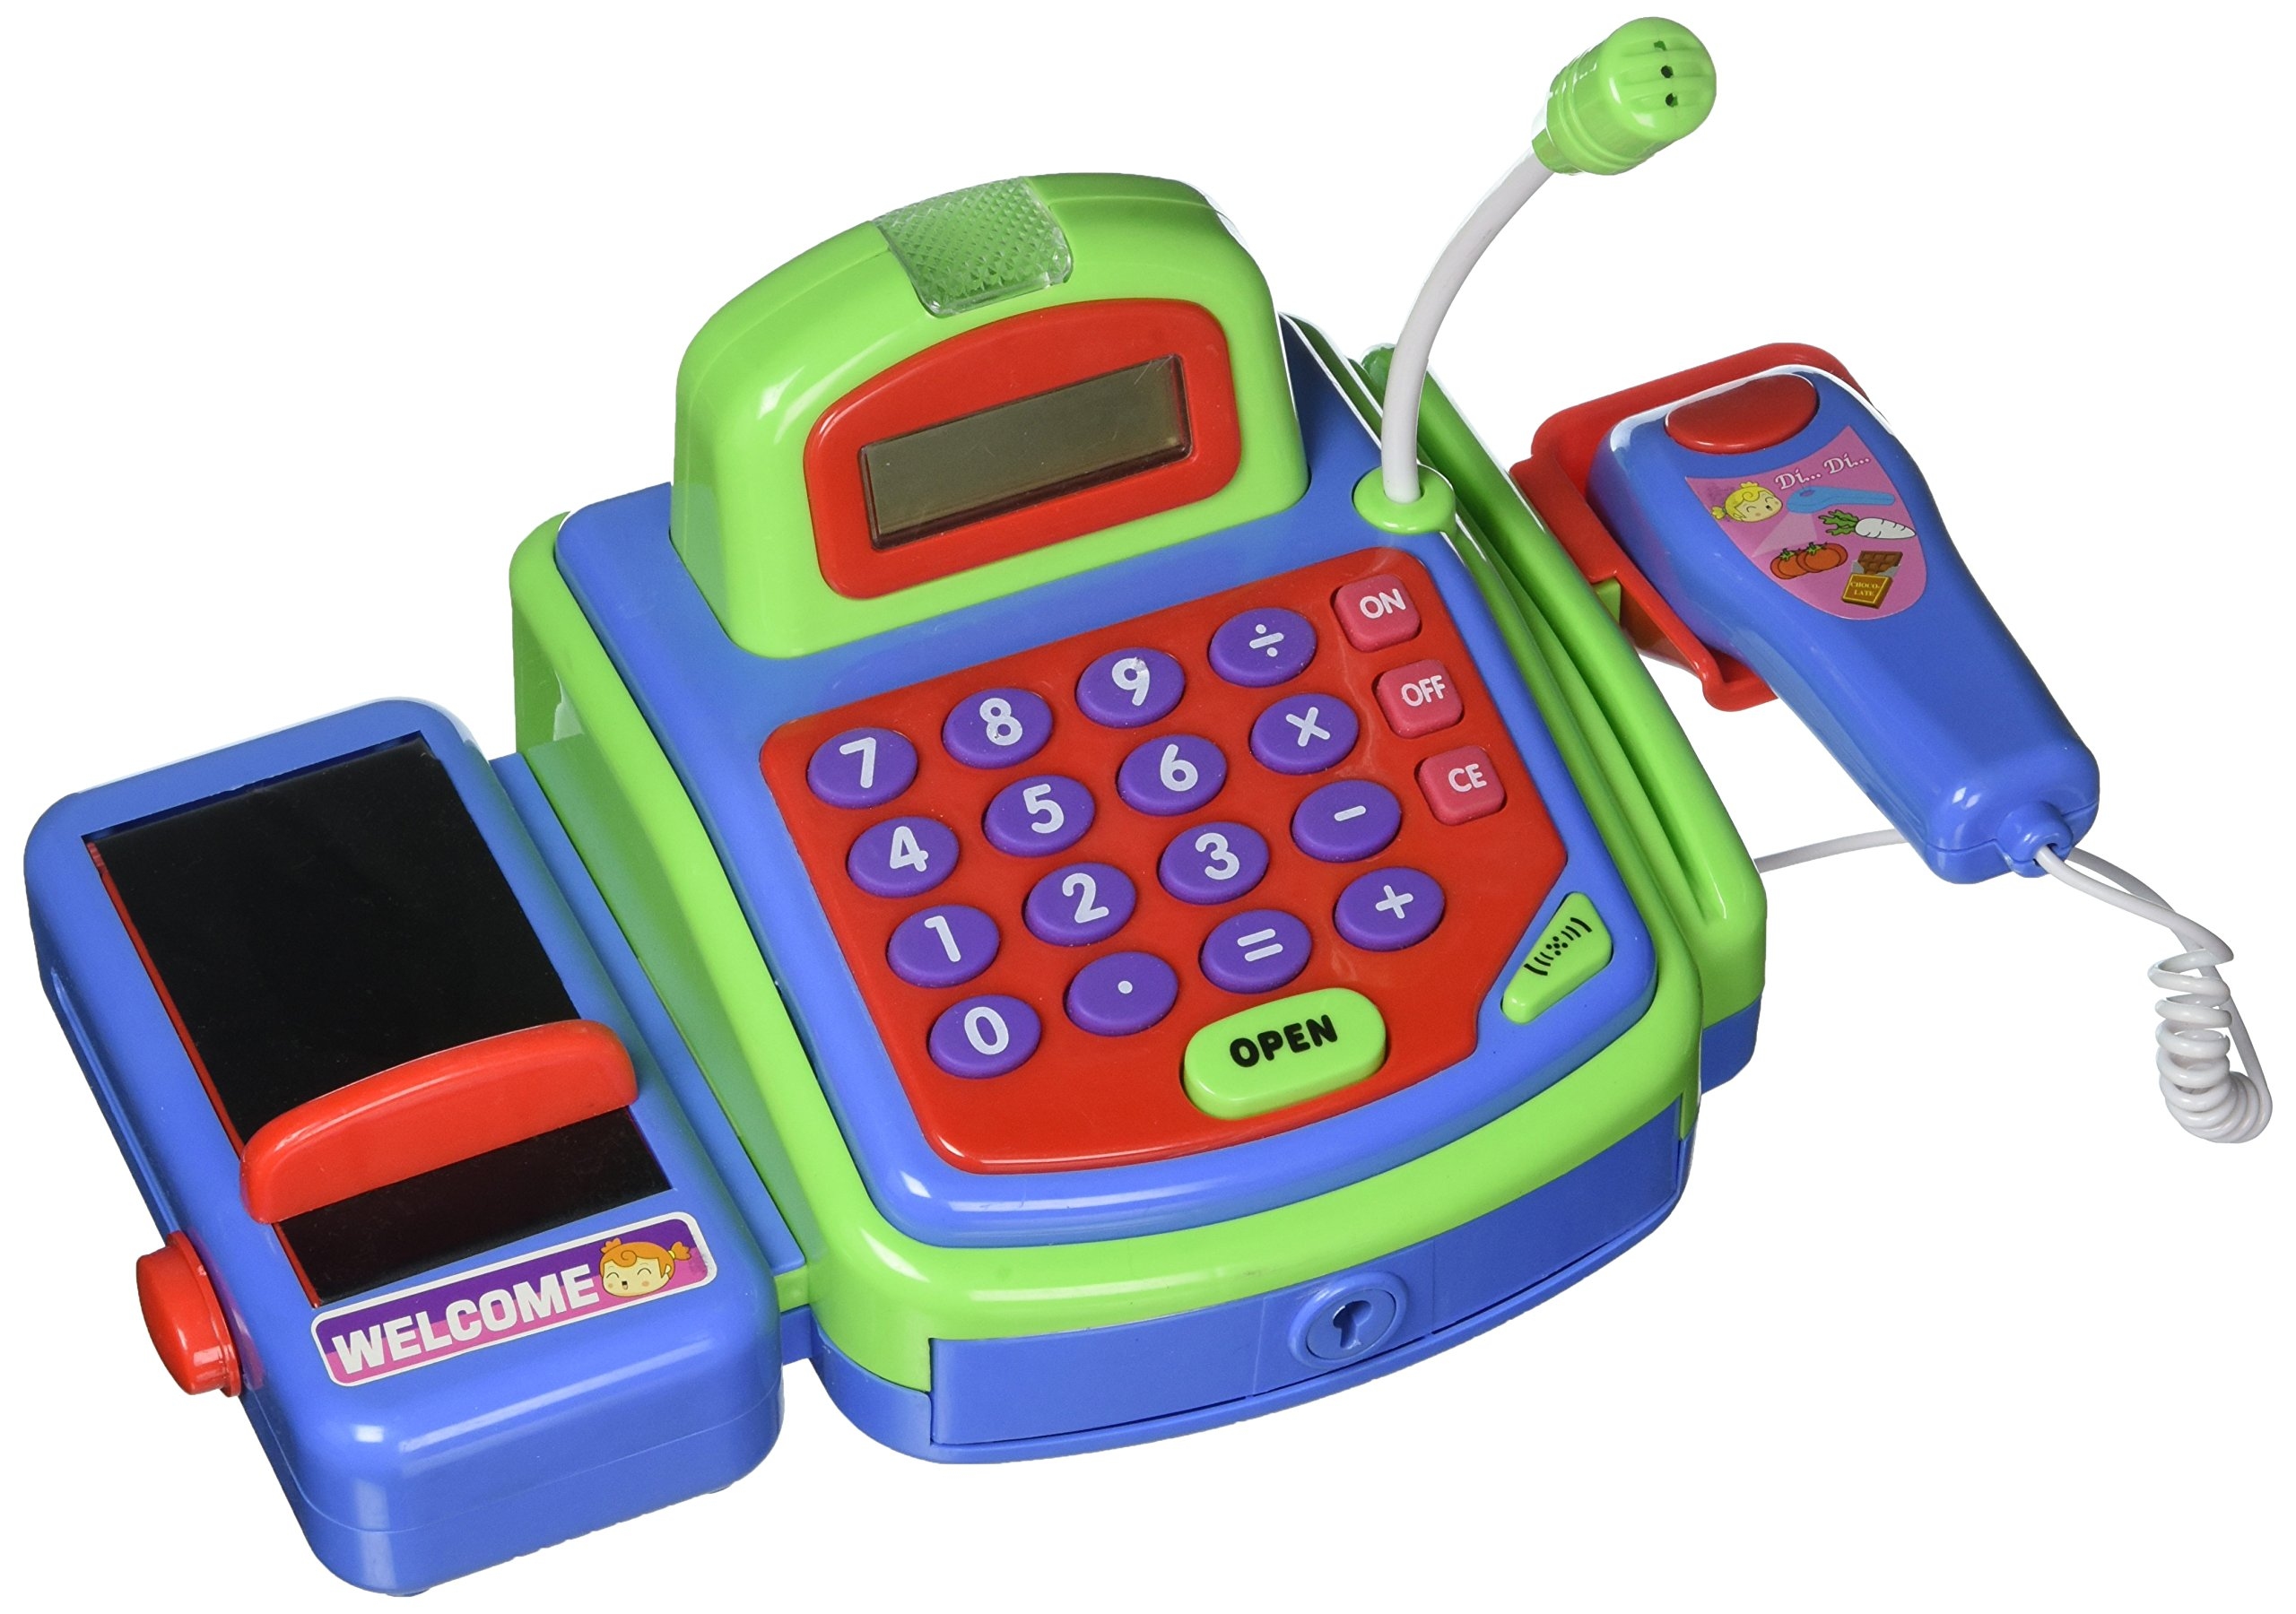 Pretend Play Electronic Cash Register Toy Realistic Actions and Sounds by YMCtoys